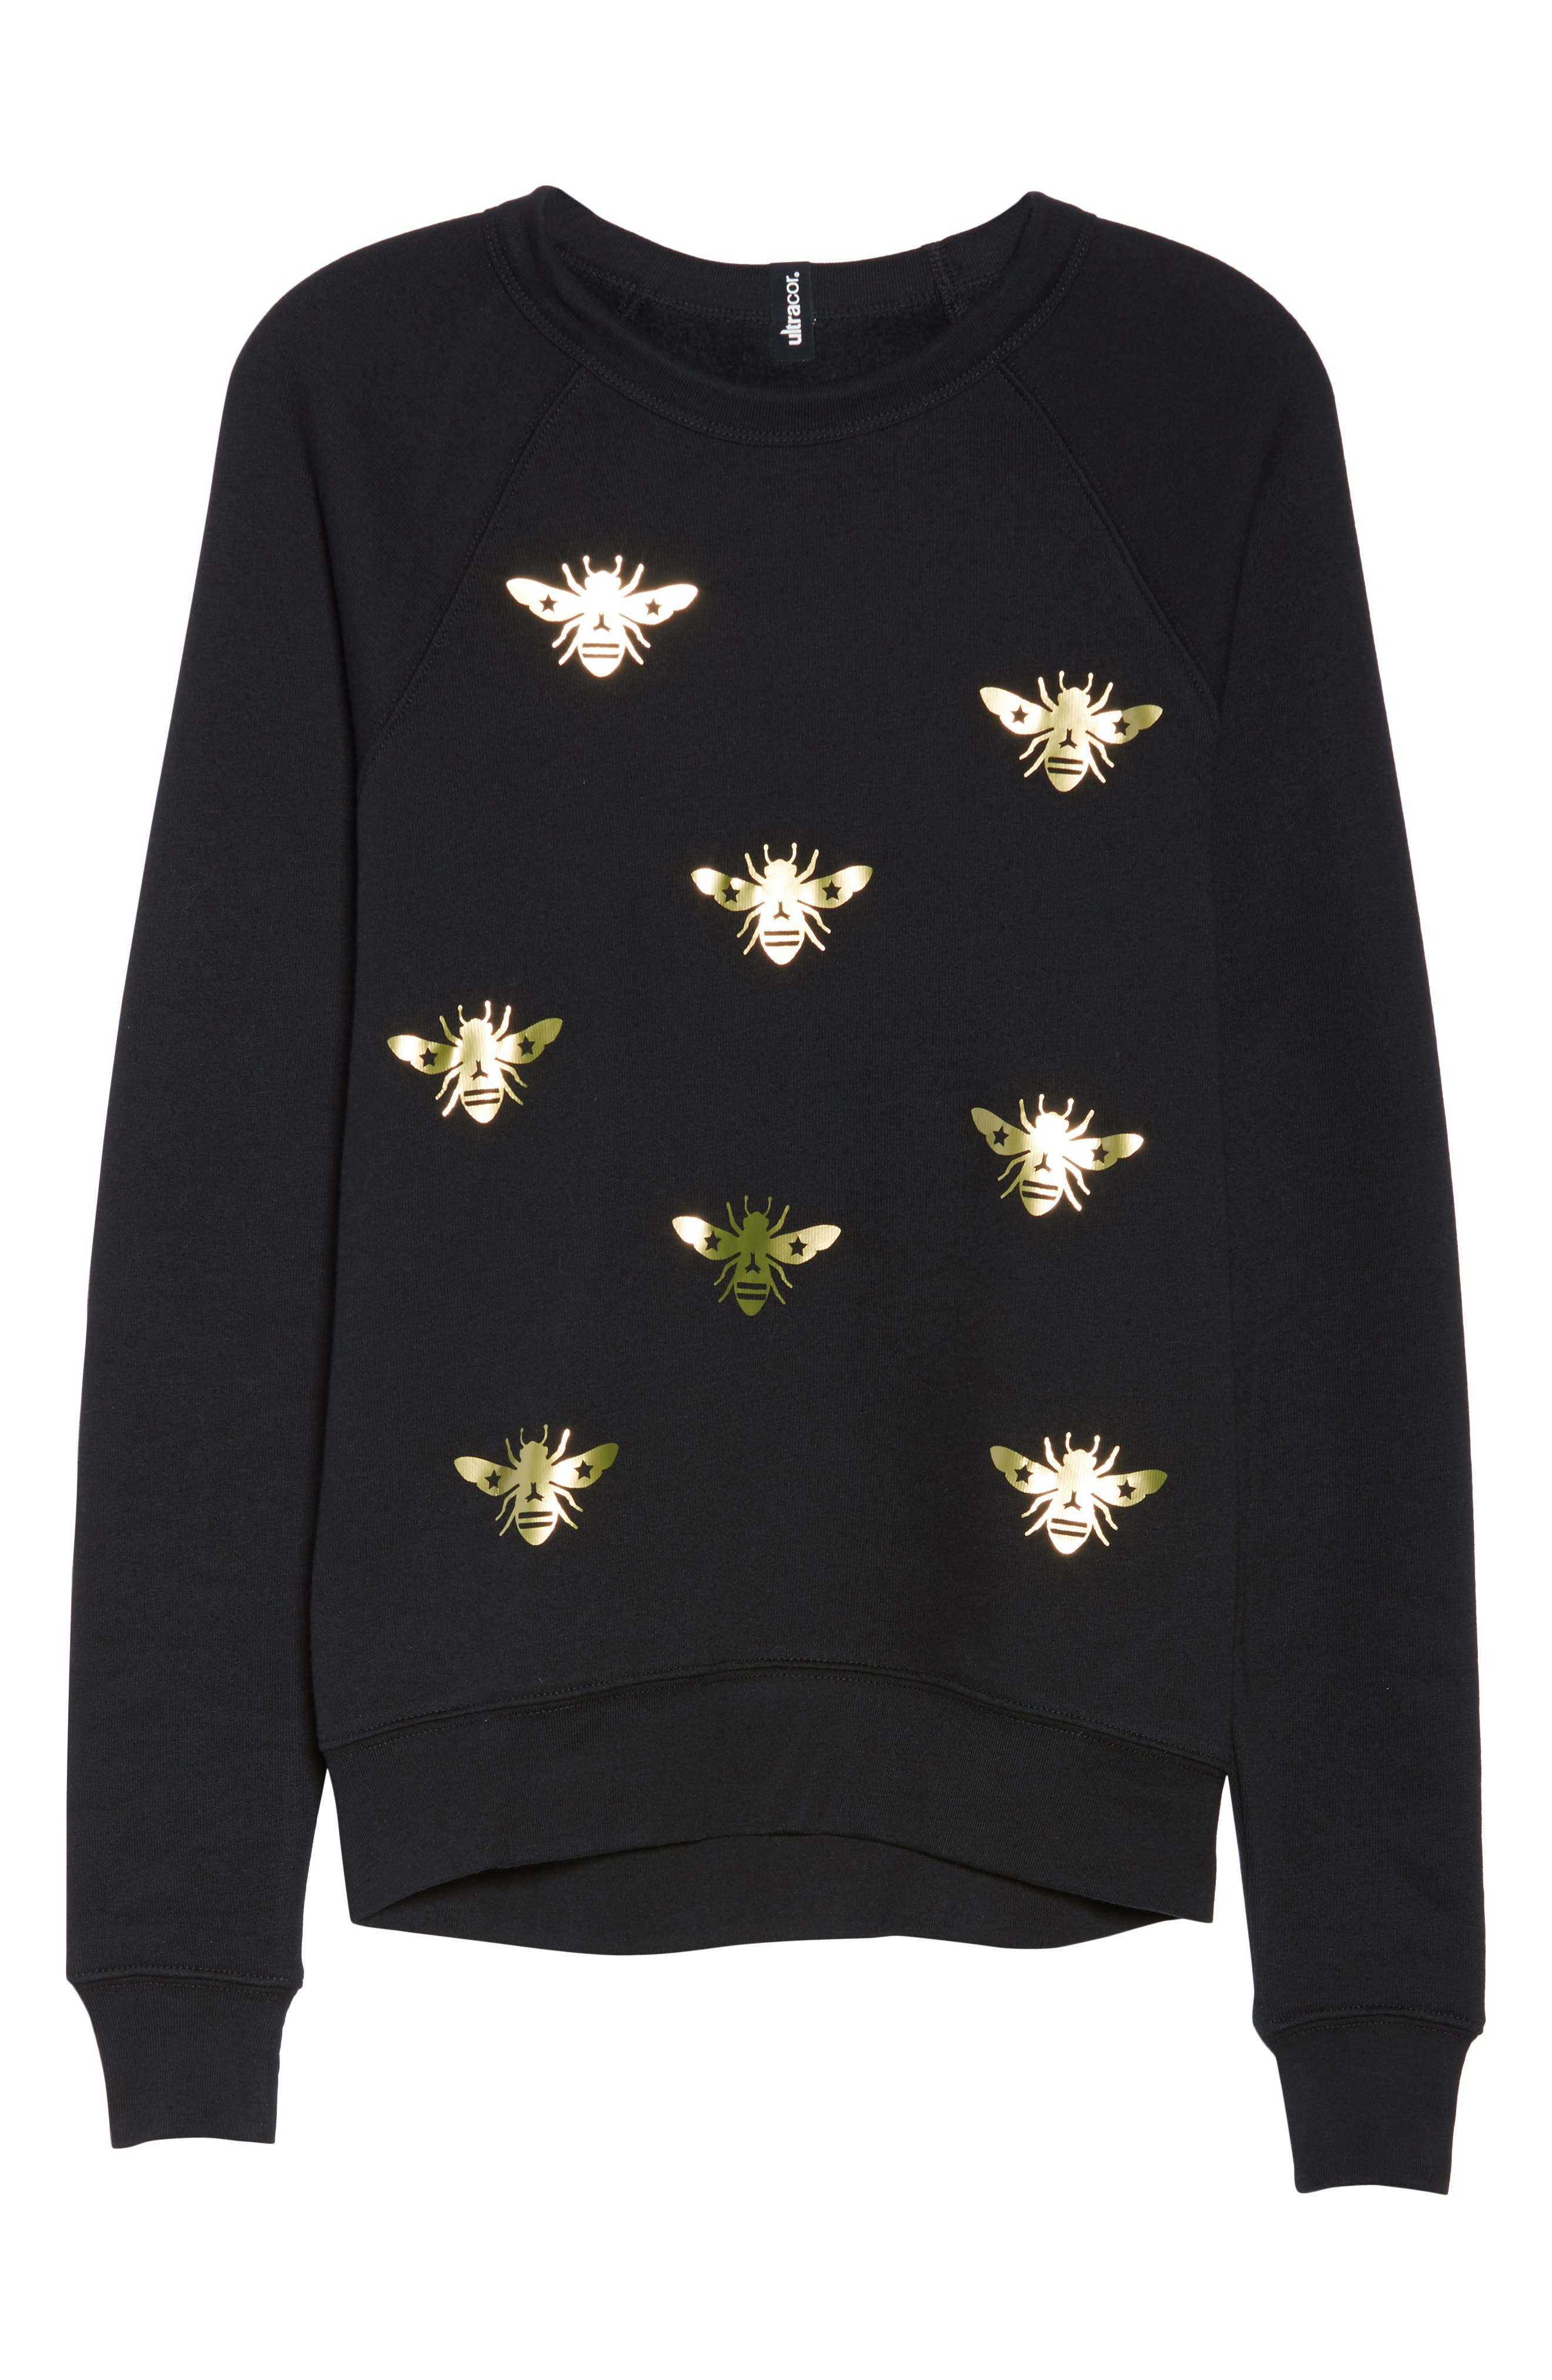 Bee Sweatshirt,                             Alternate thumbnail 6, color,                             Nero/ Gold